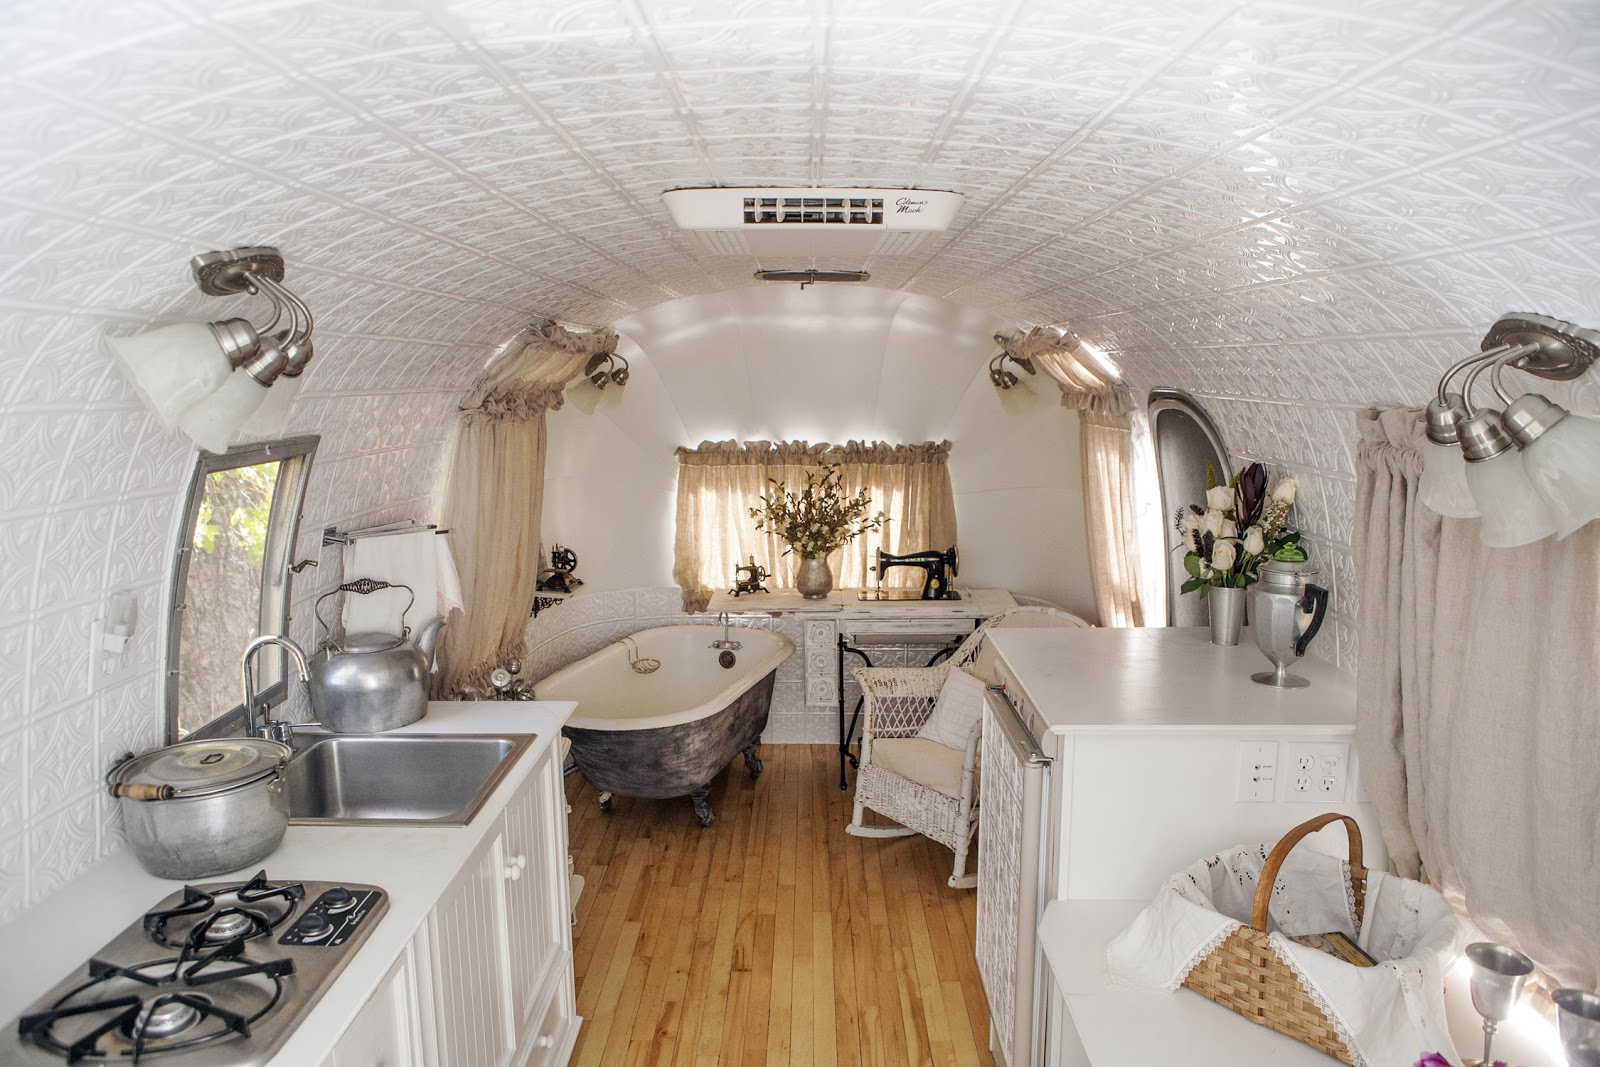 MaryJanesFarm-airstream_sink-tub-frig